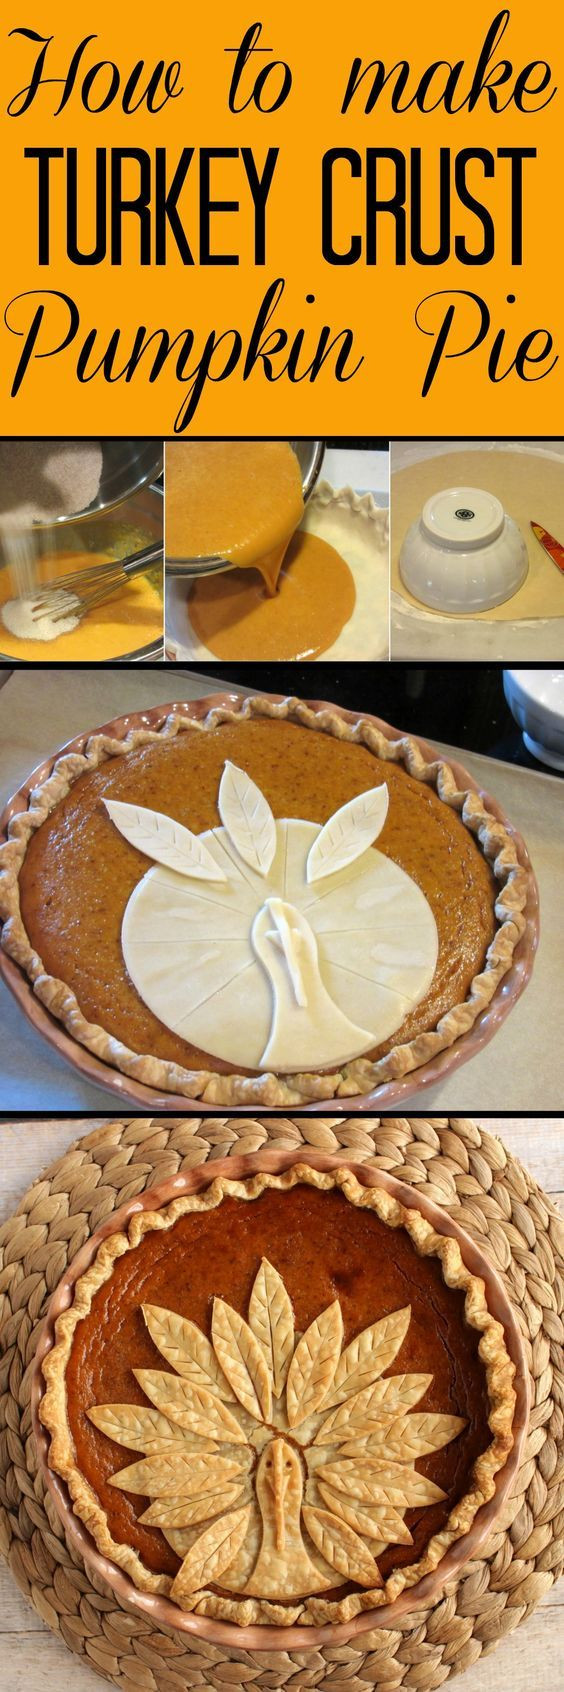 Holiday Desserts For Thanksgiving  Best 20 Thanksgiving treats ideas on Pinterest